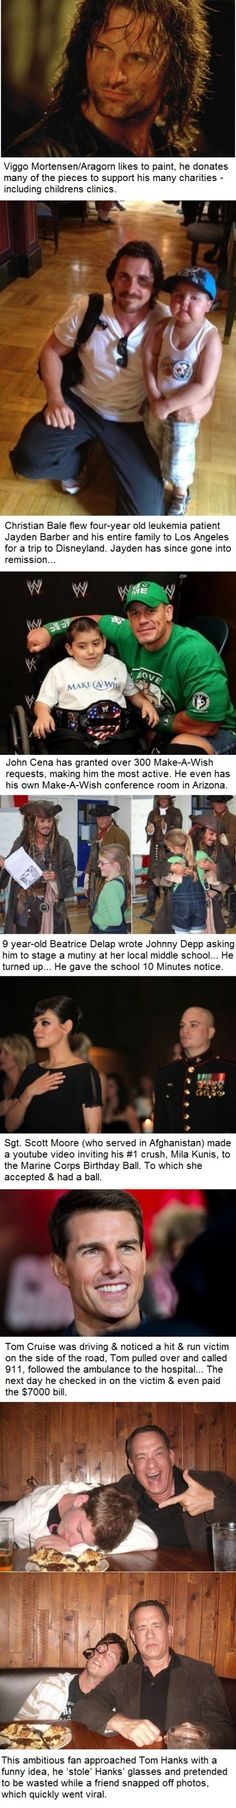 When your faith in humanity needs to be restored